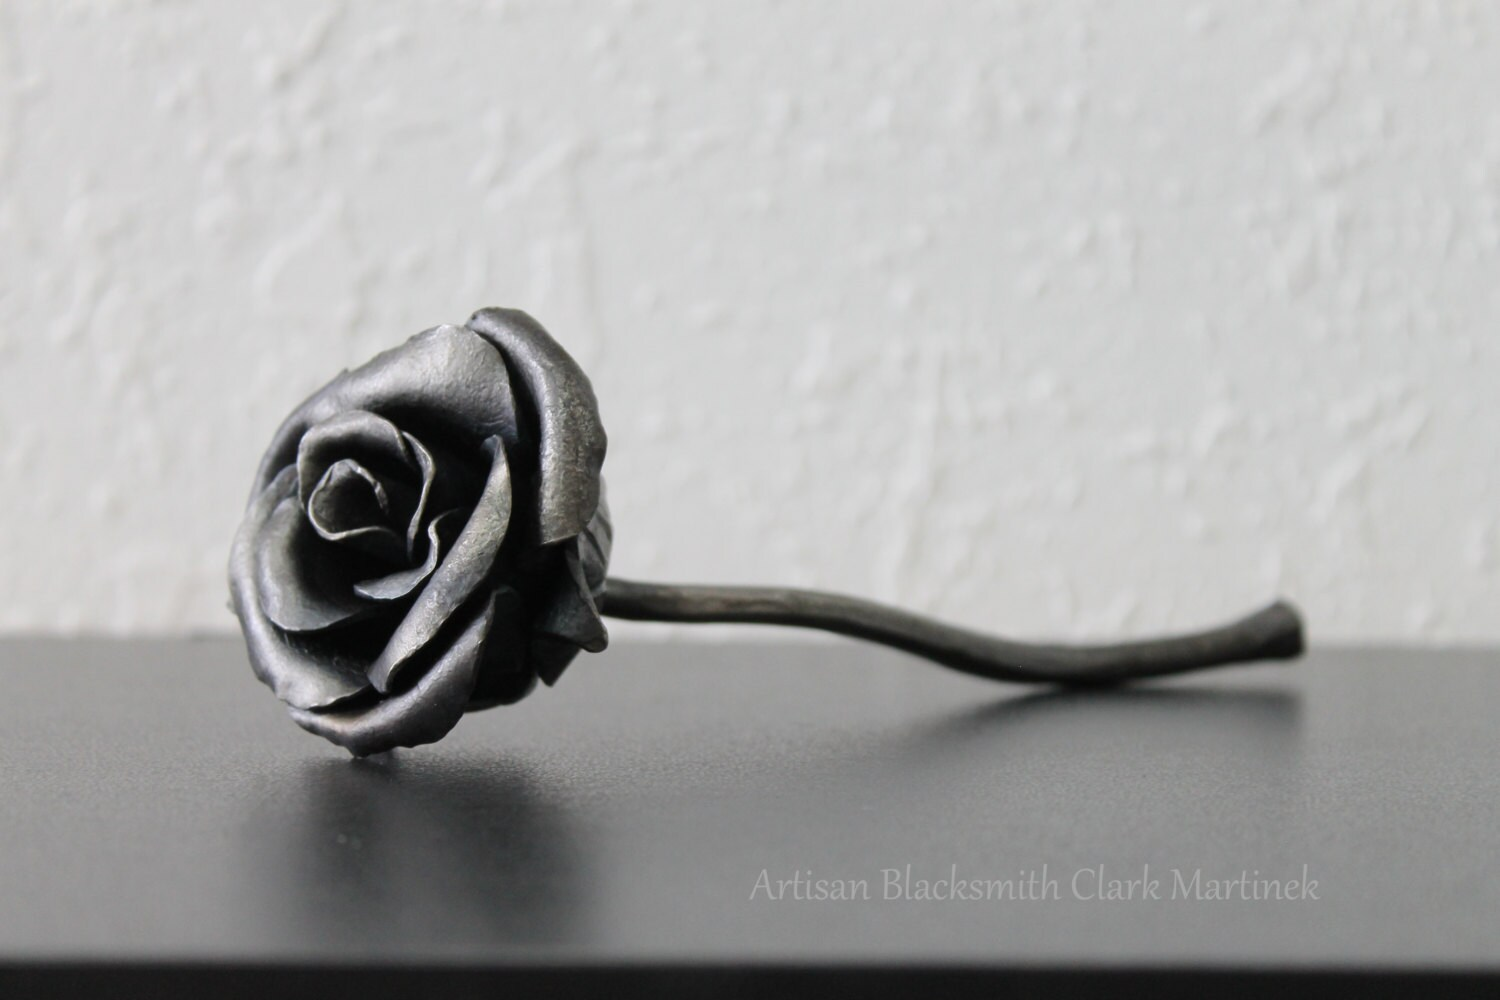 Iron Gifts For 6th Wedding Anniversary: 6th Anniversary Gift Iron Gift For Her Iron Rose Steel Rose